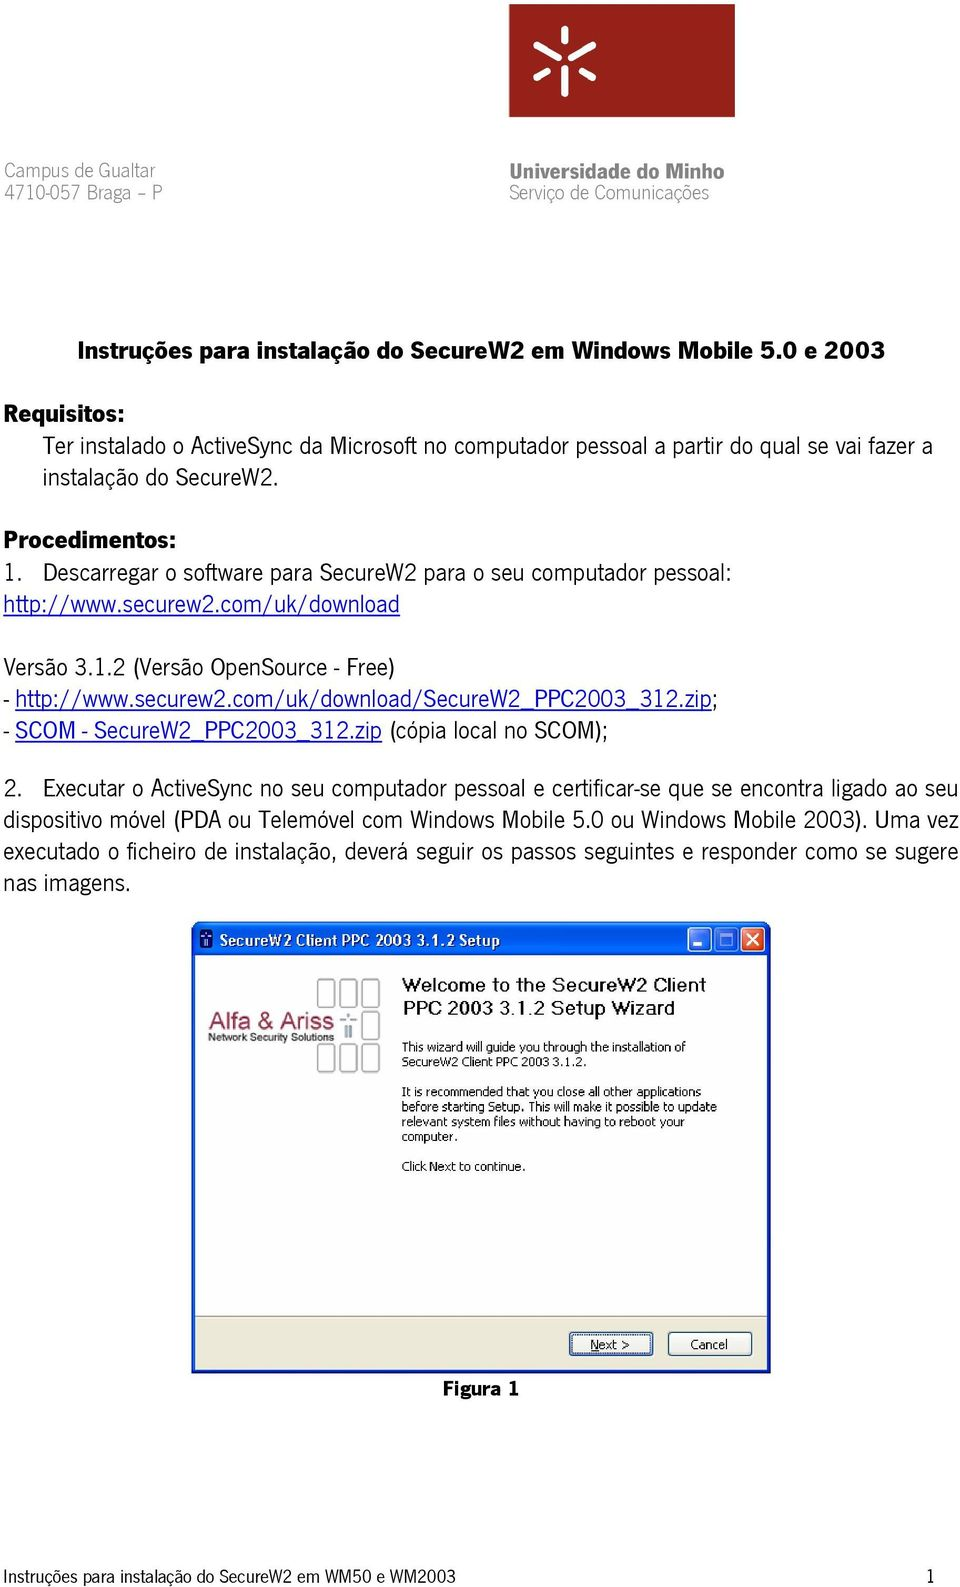 Descarregar o software para SecureW2 para o seu computador pessoal: http://www.securew2.com/uk/download Versão 3.1.2 (Versão OpenSource - Free) - http://www.securew2.com/uk/download/securew2_ppc2003_312.